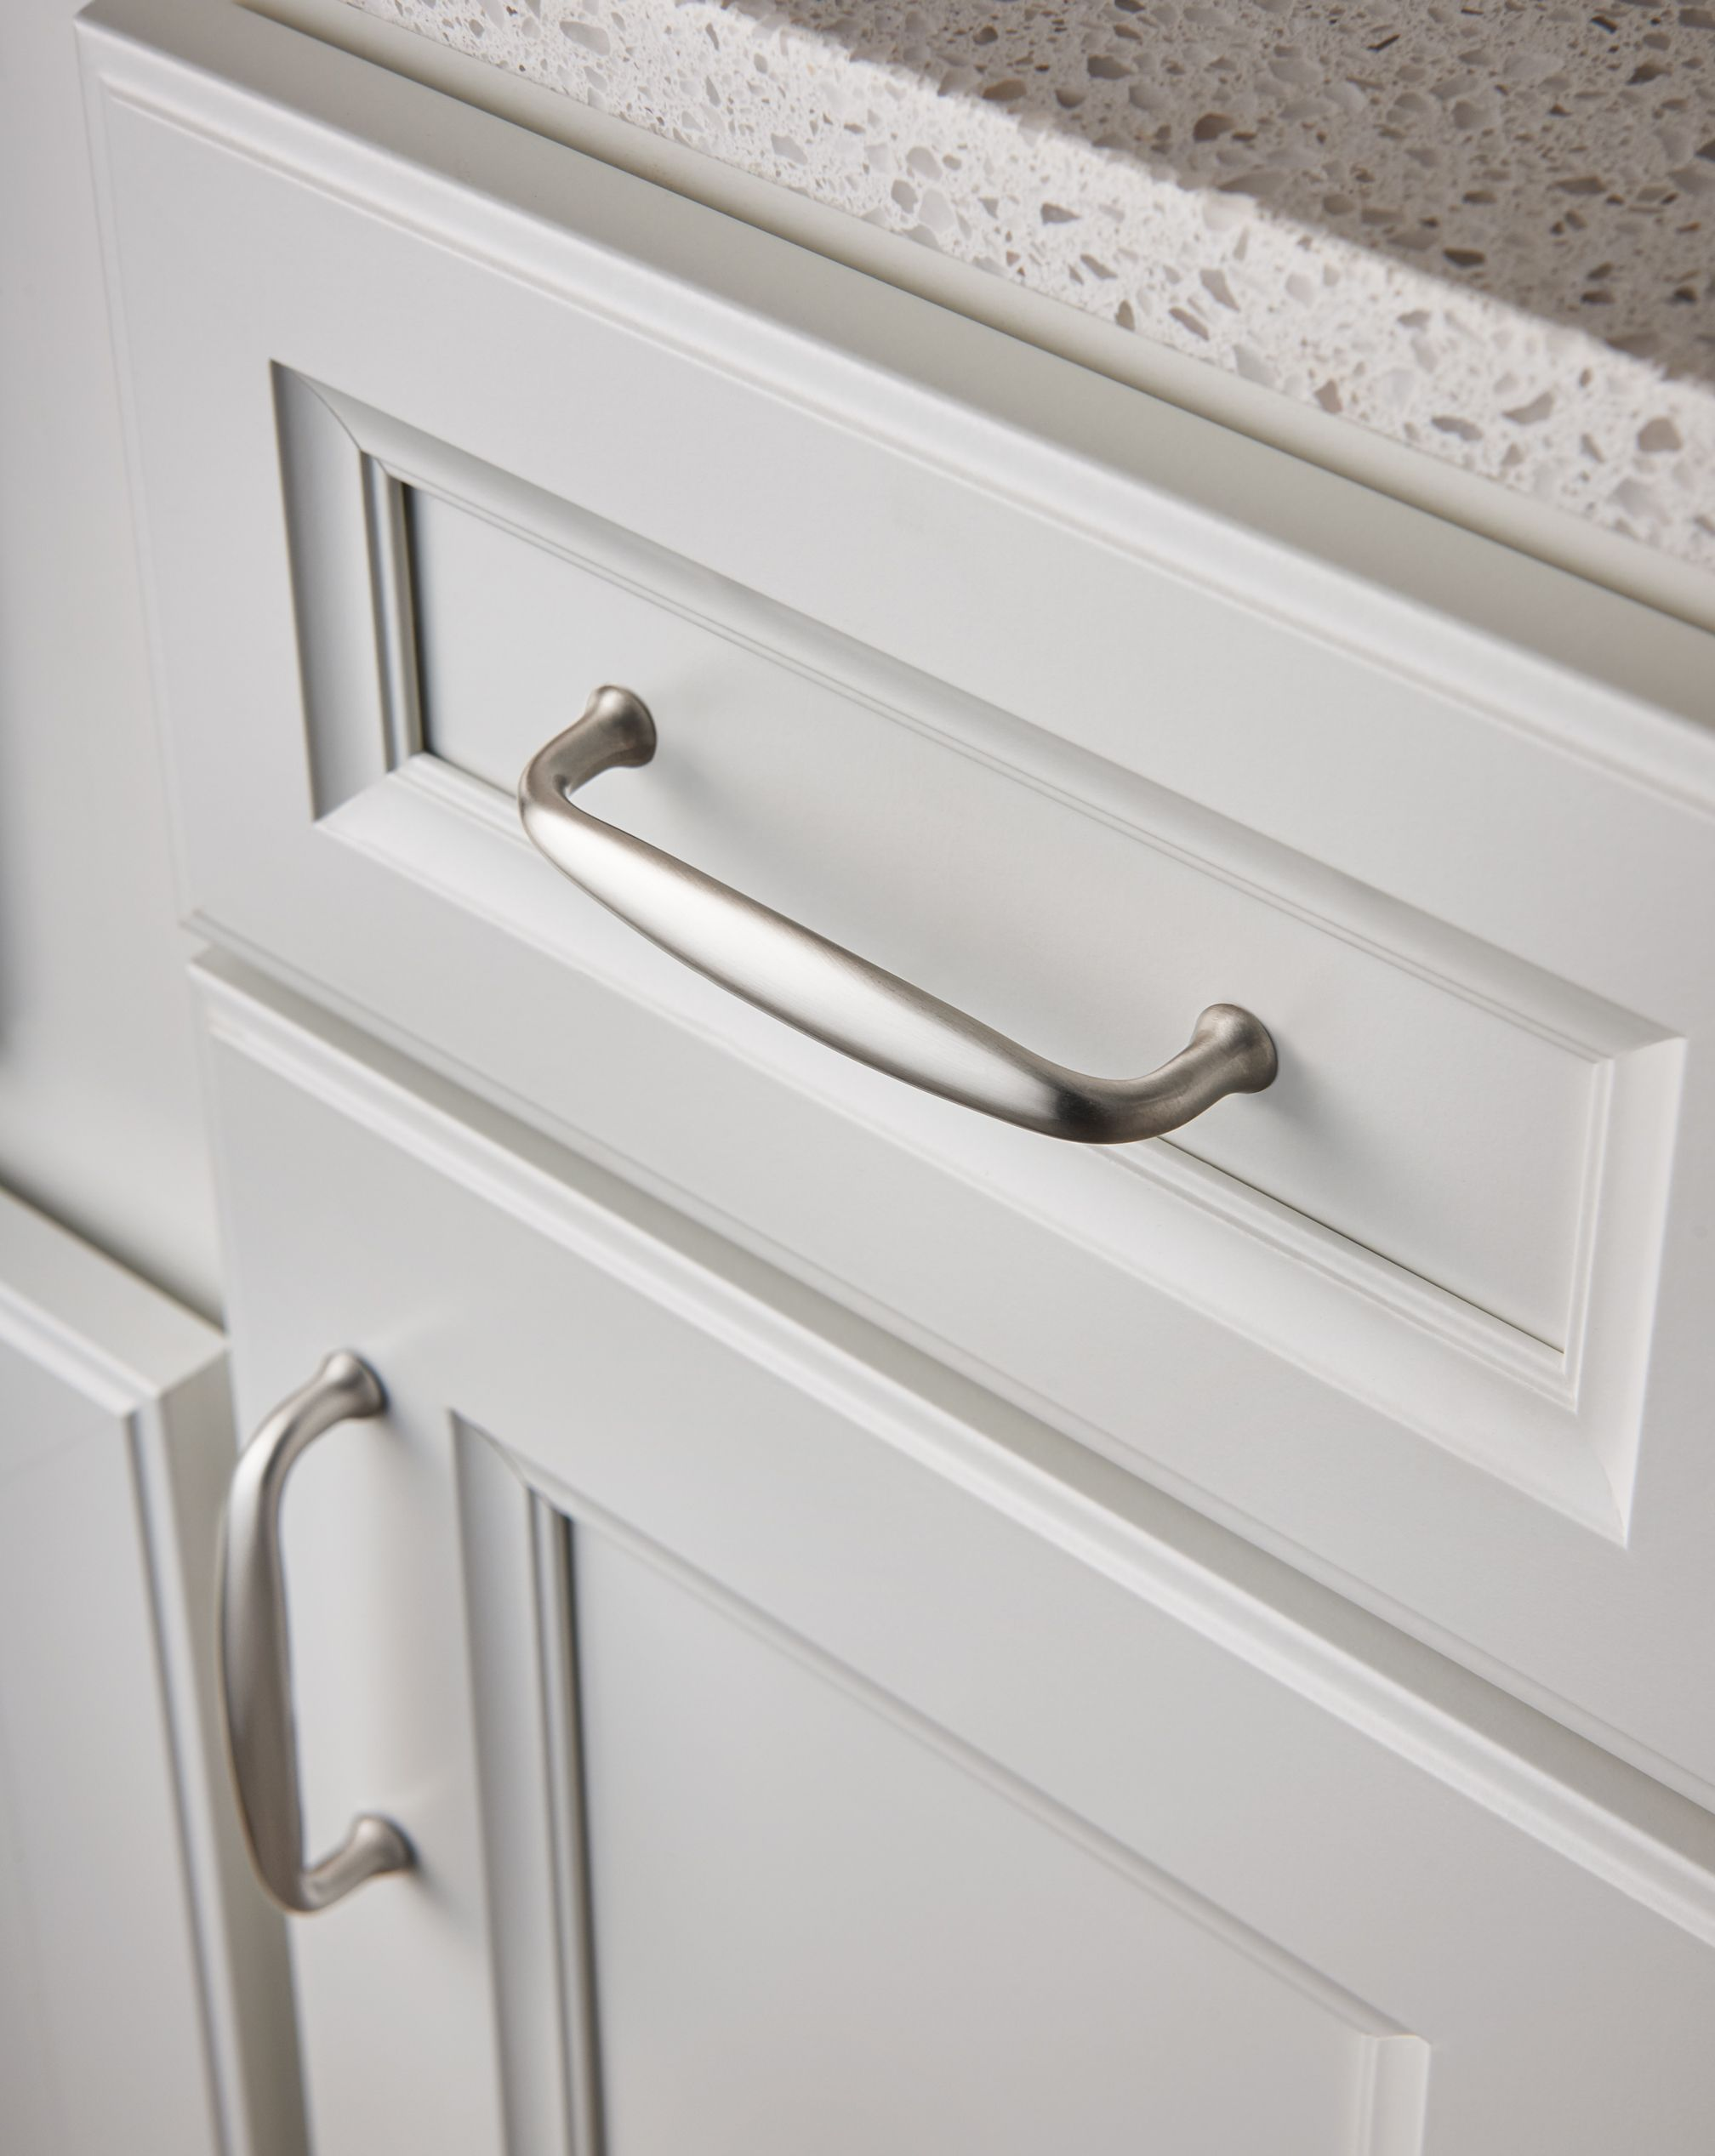 M1279 4 Quot Cc Pull In Brushed Satin Nickel Cabinet Hardware Brushed Nickel Kitchen Cabinet